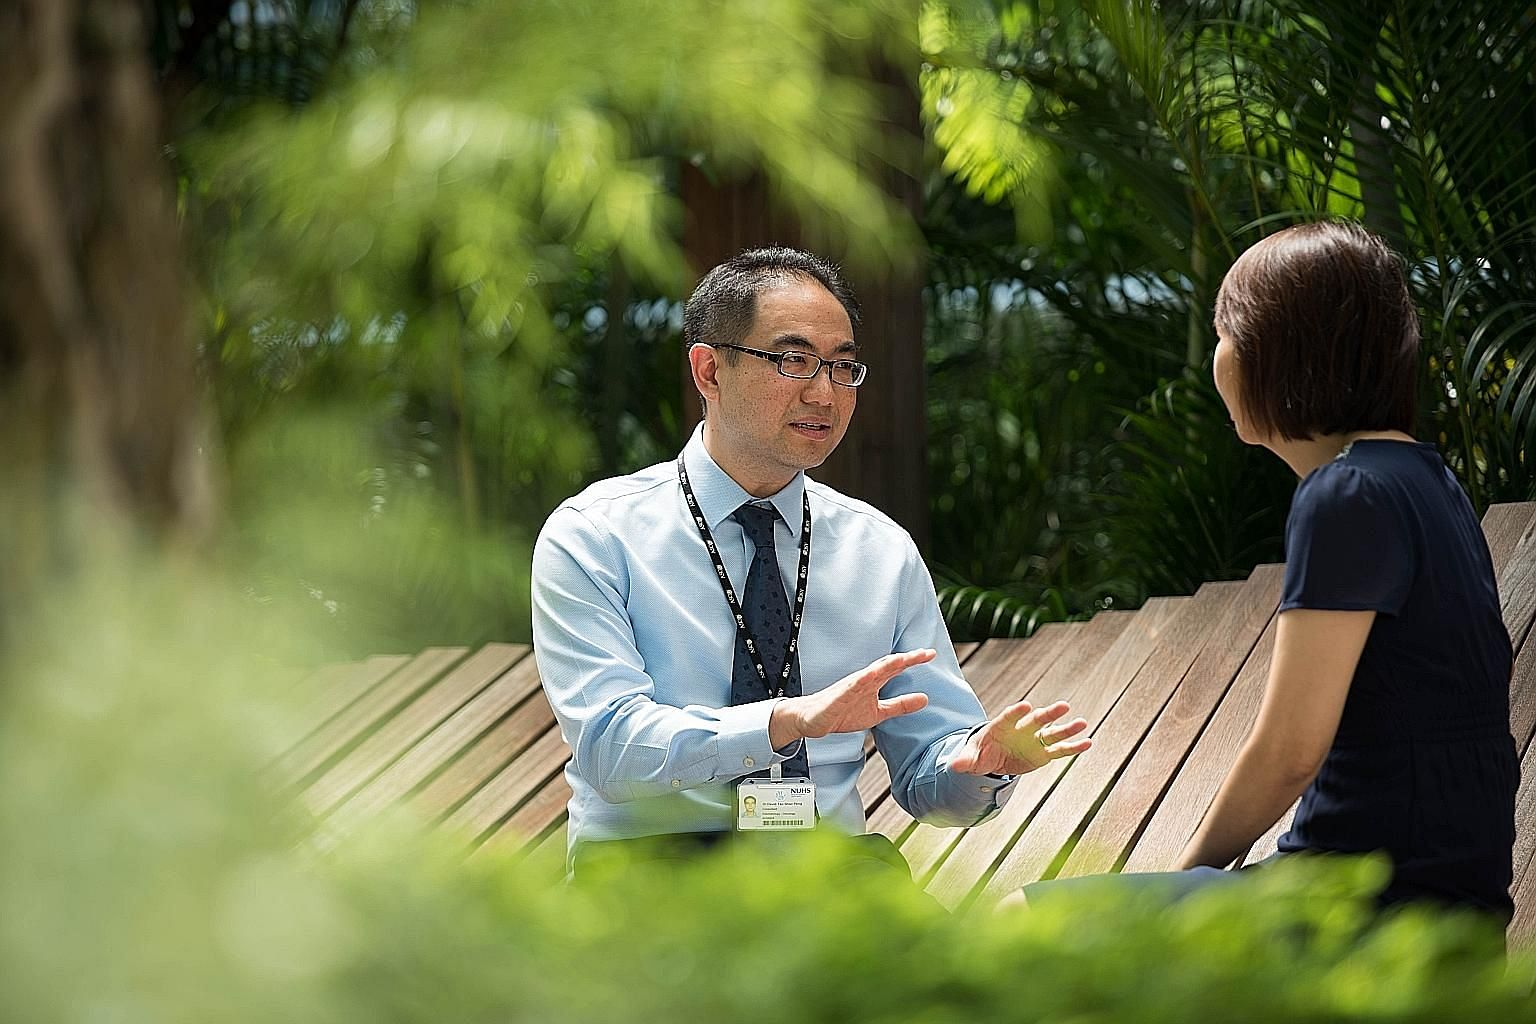 Dr David Tan, lead investigator of the Integrated Molecular Analysis of Cancer Programme, with Madam Tan. Being matched with a clinical trial has helped Madam Tan, who had undergone six operations to remove various organs as her ovarian cancer spread